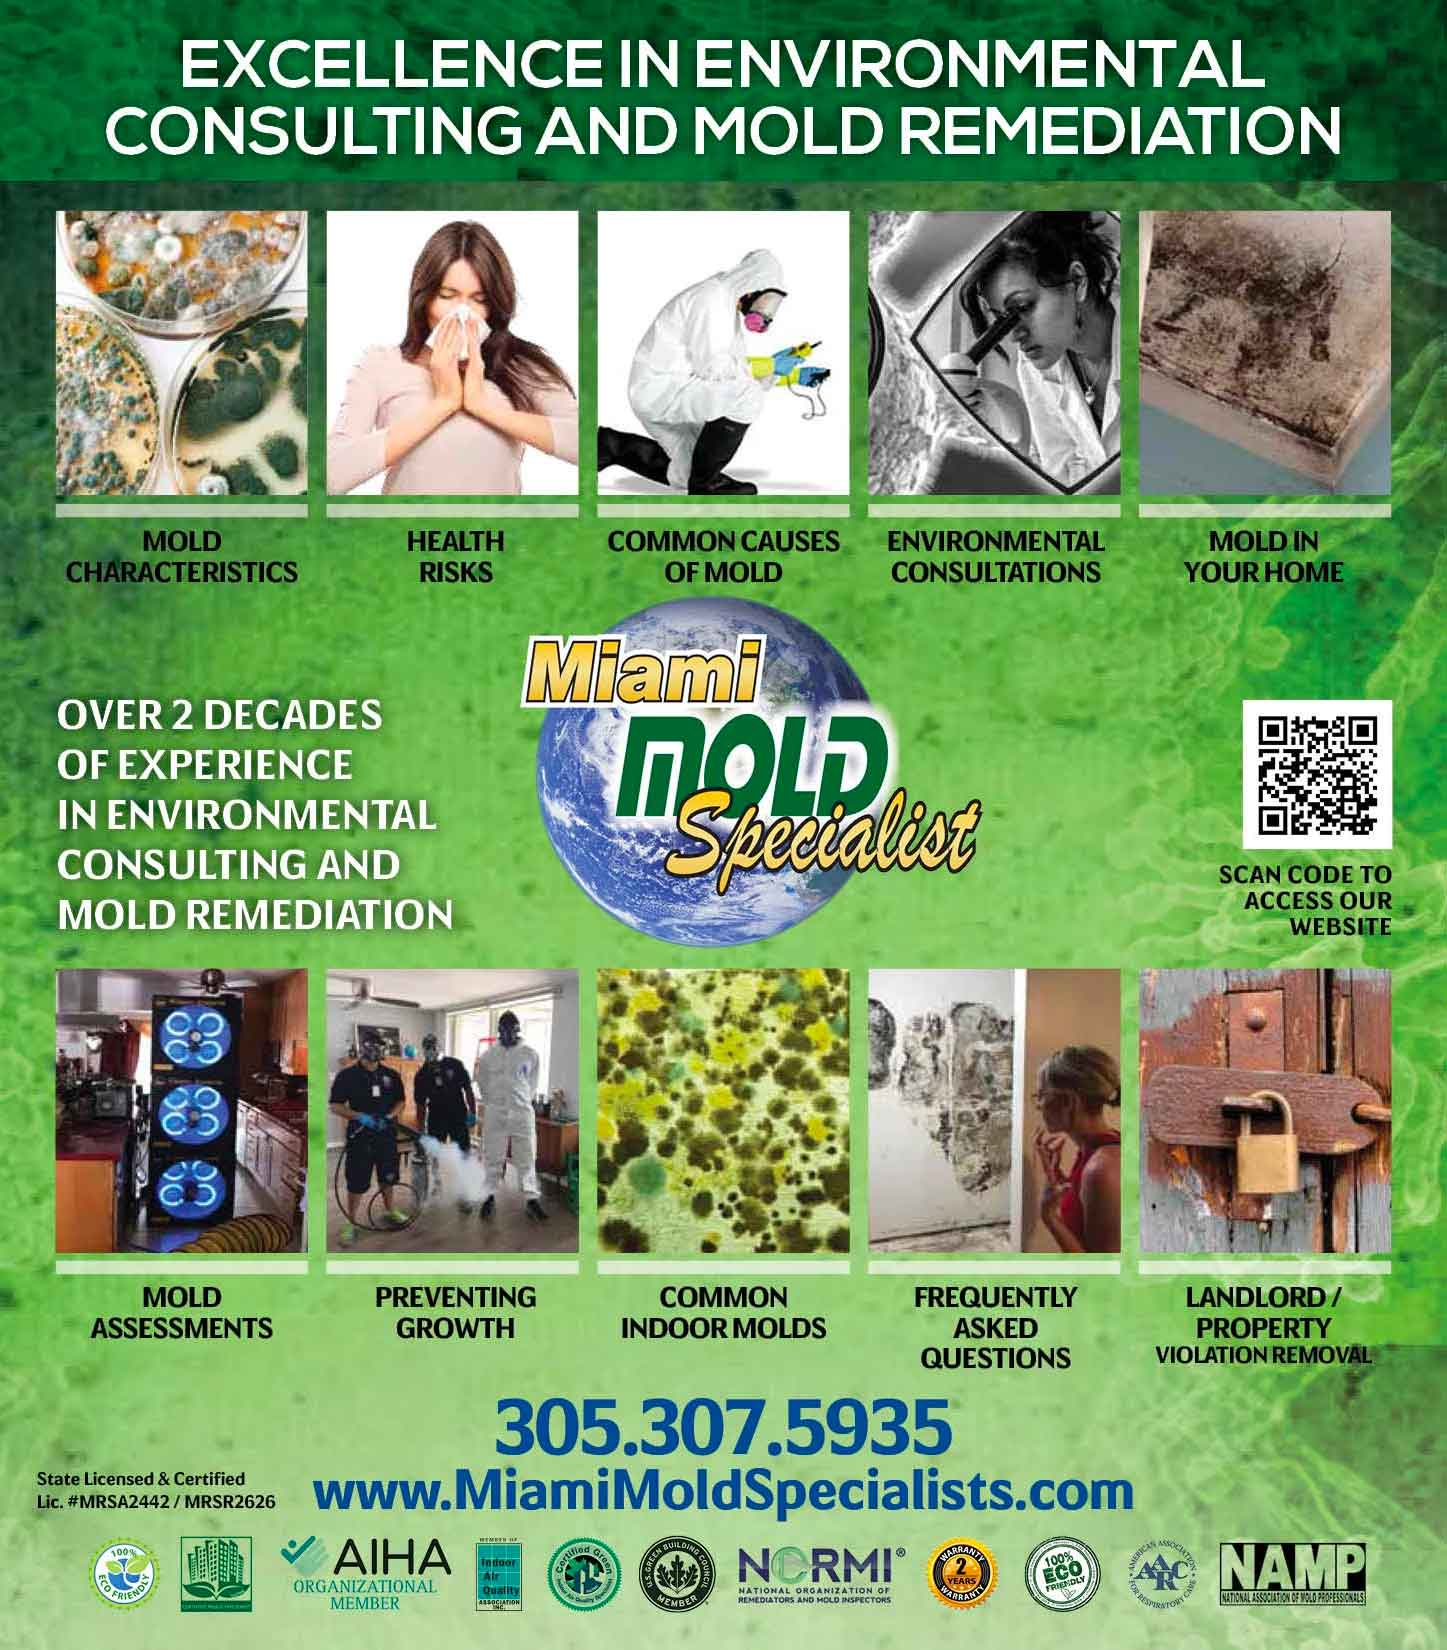 Excellence In Environmental Consulting And Mold Remediation